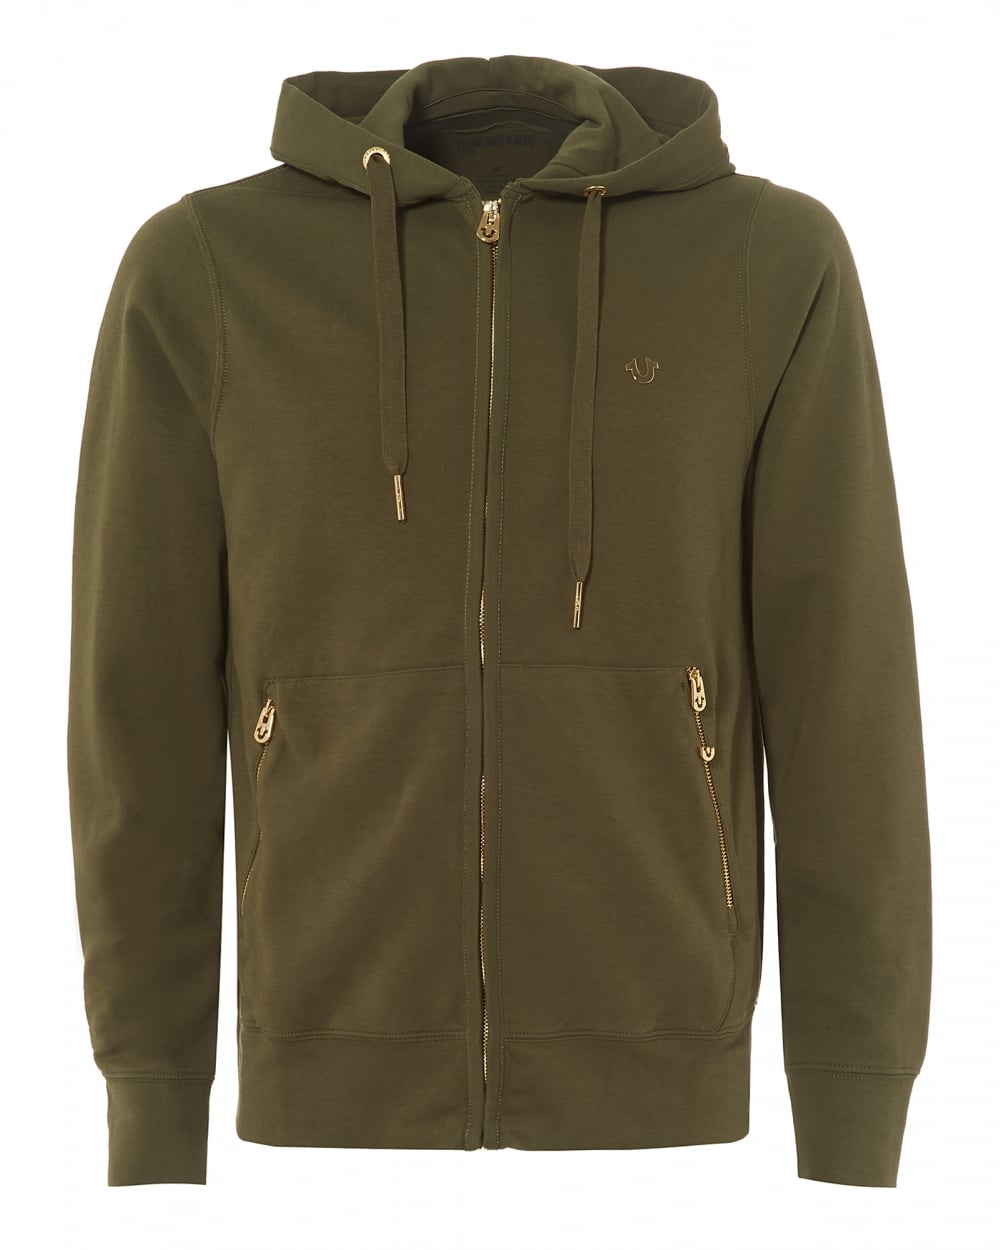 True Religion Mens Khaki Green Fleece Gold Horseshoe Logo Zip ... 99d8c4296